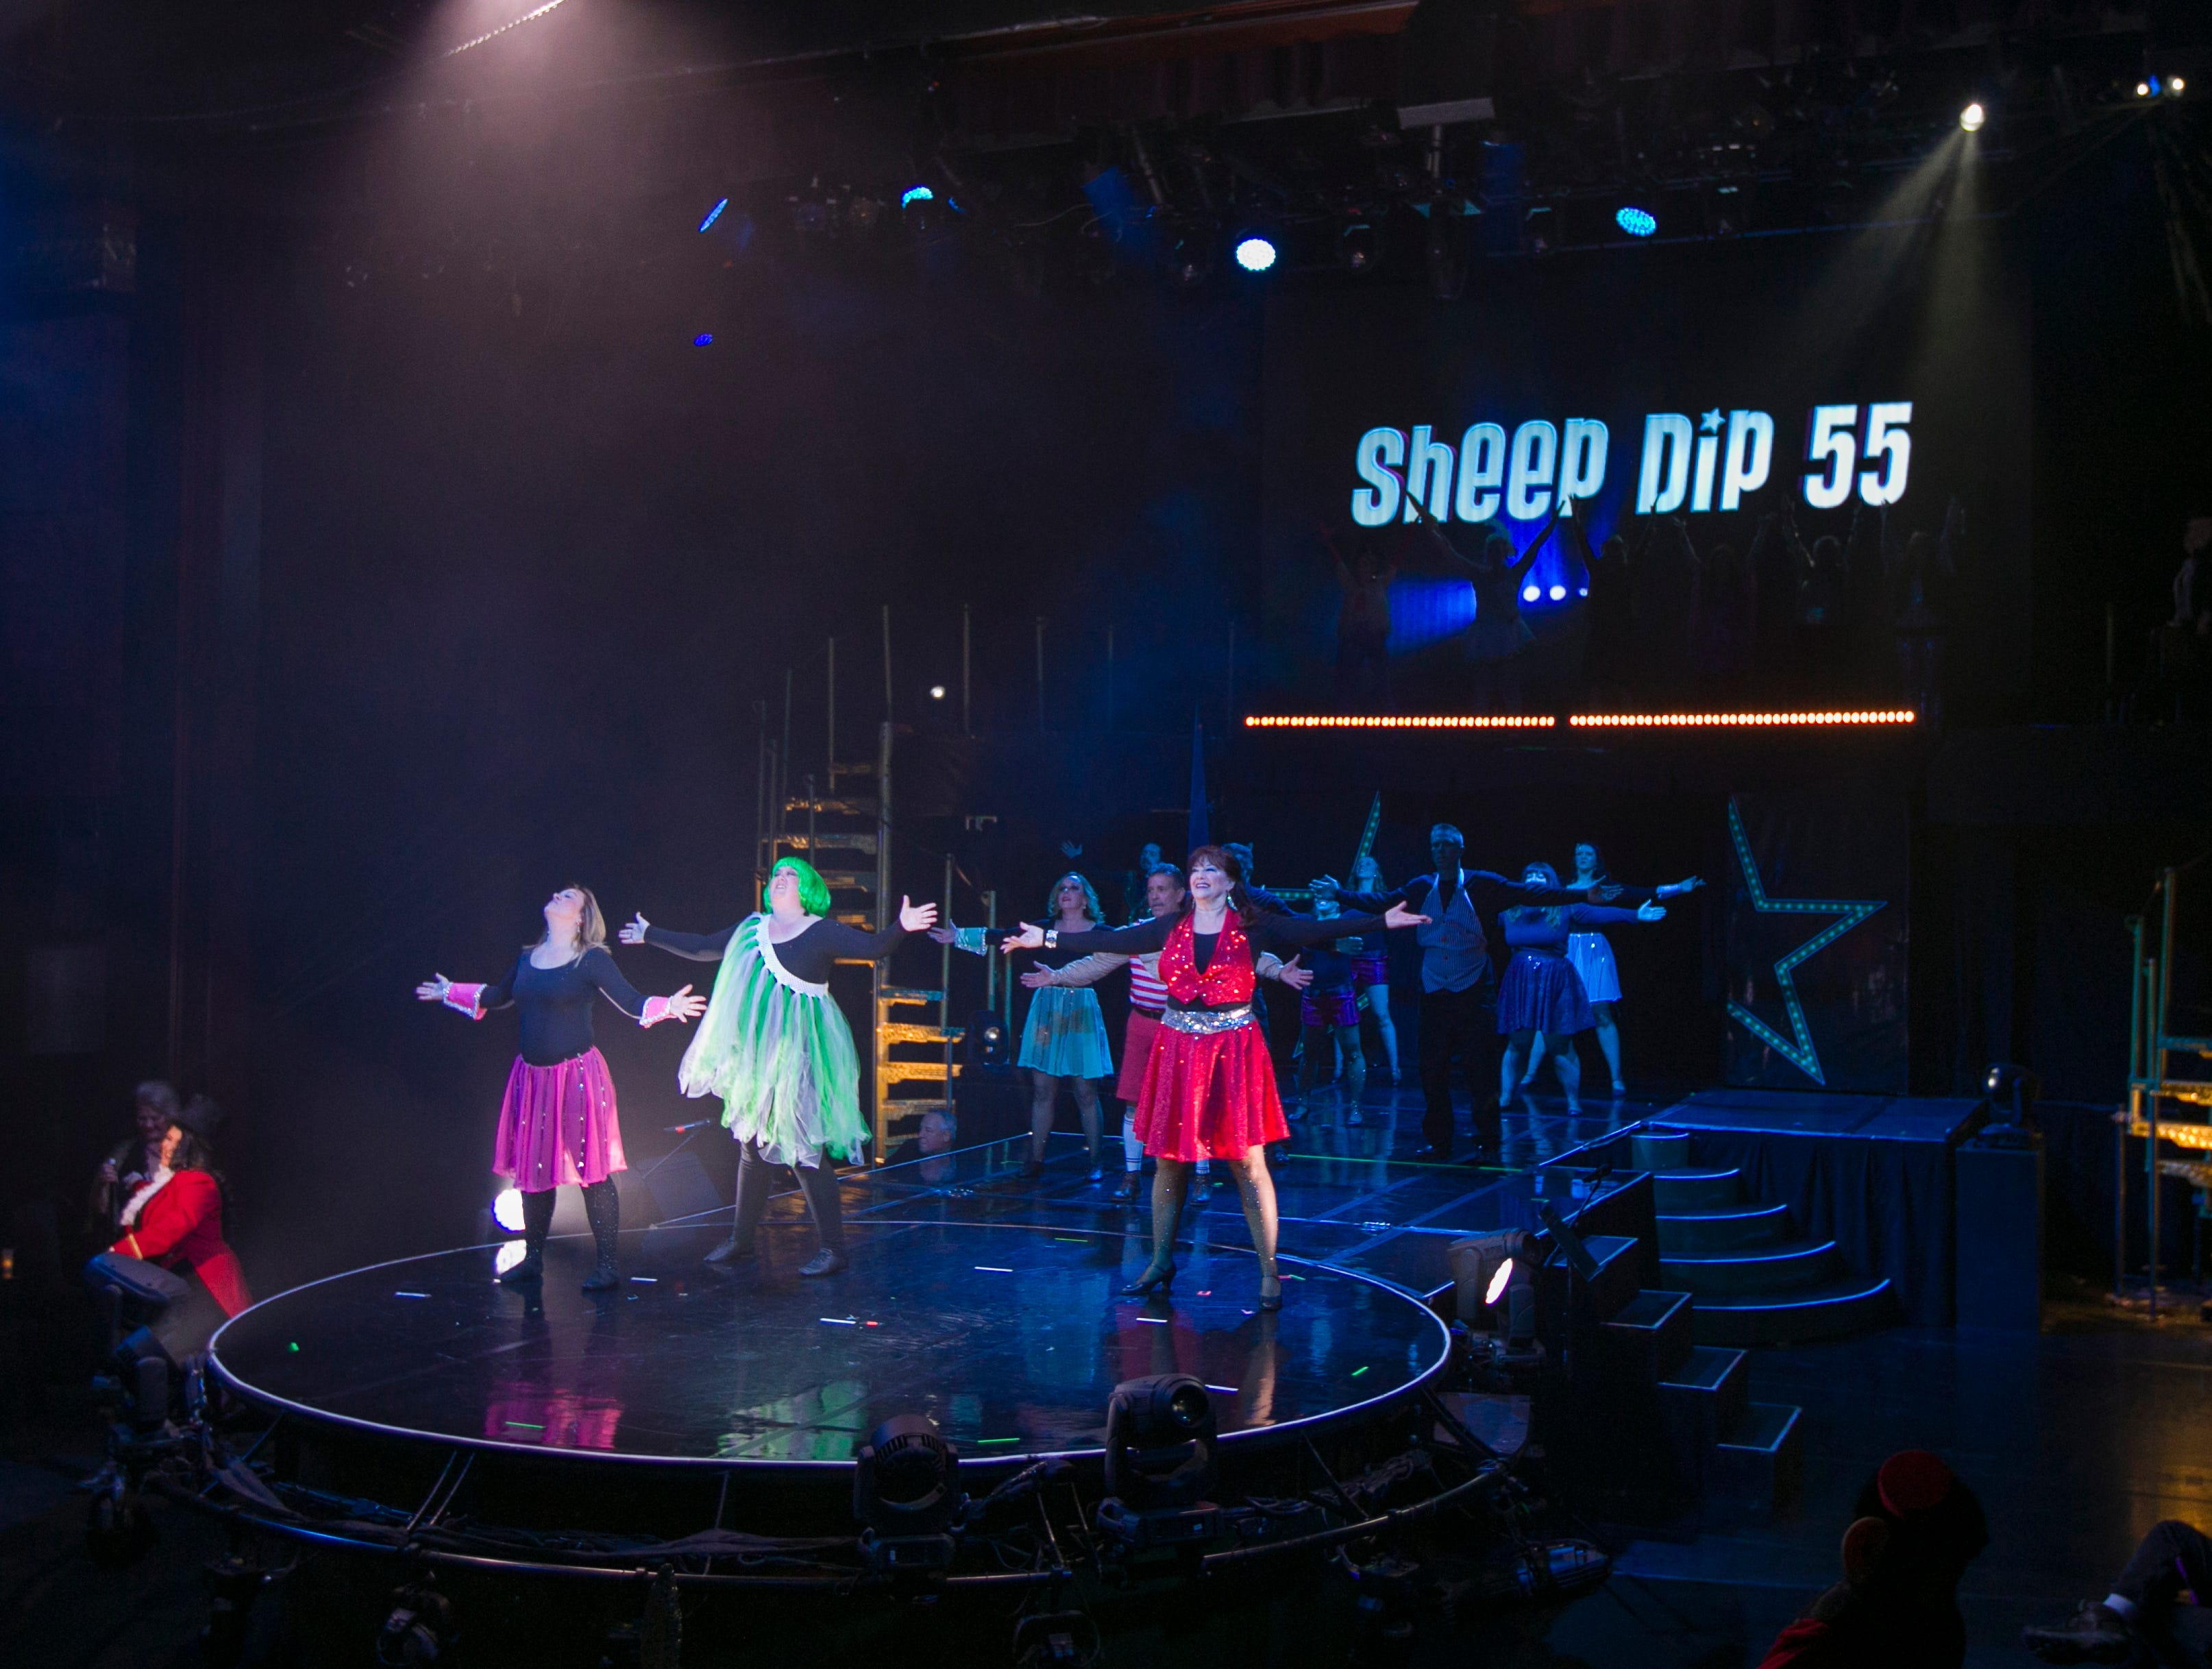 A photograph taken during the Sheep Dip Rehearsal on Thursday night Jan. 10, 2019 at the Eldorado Hotel Casino in Reno, Nev.